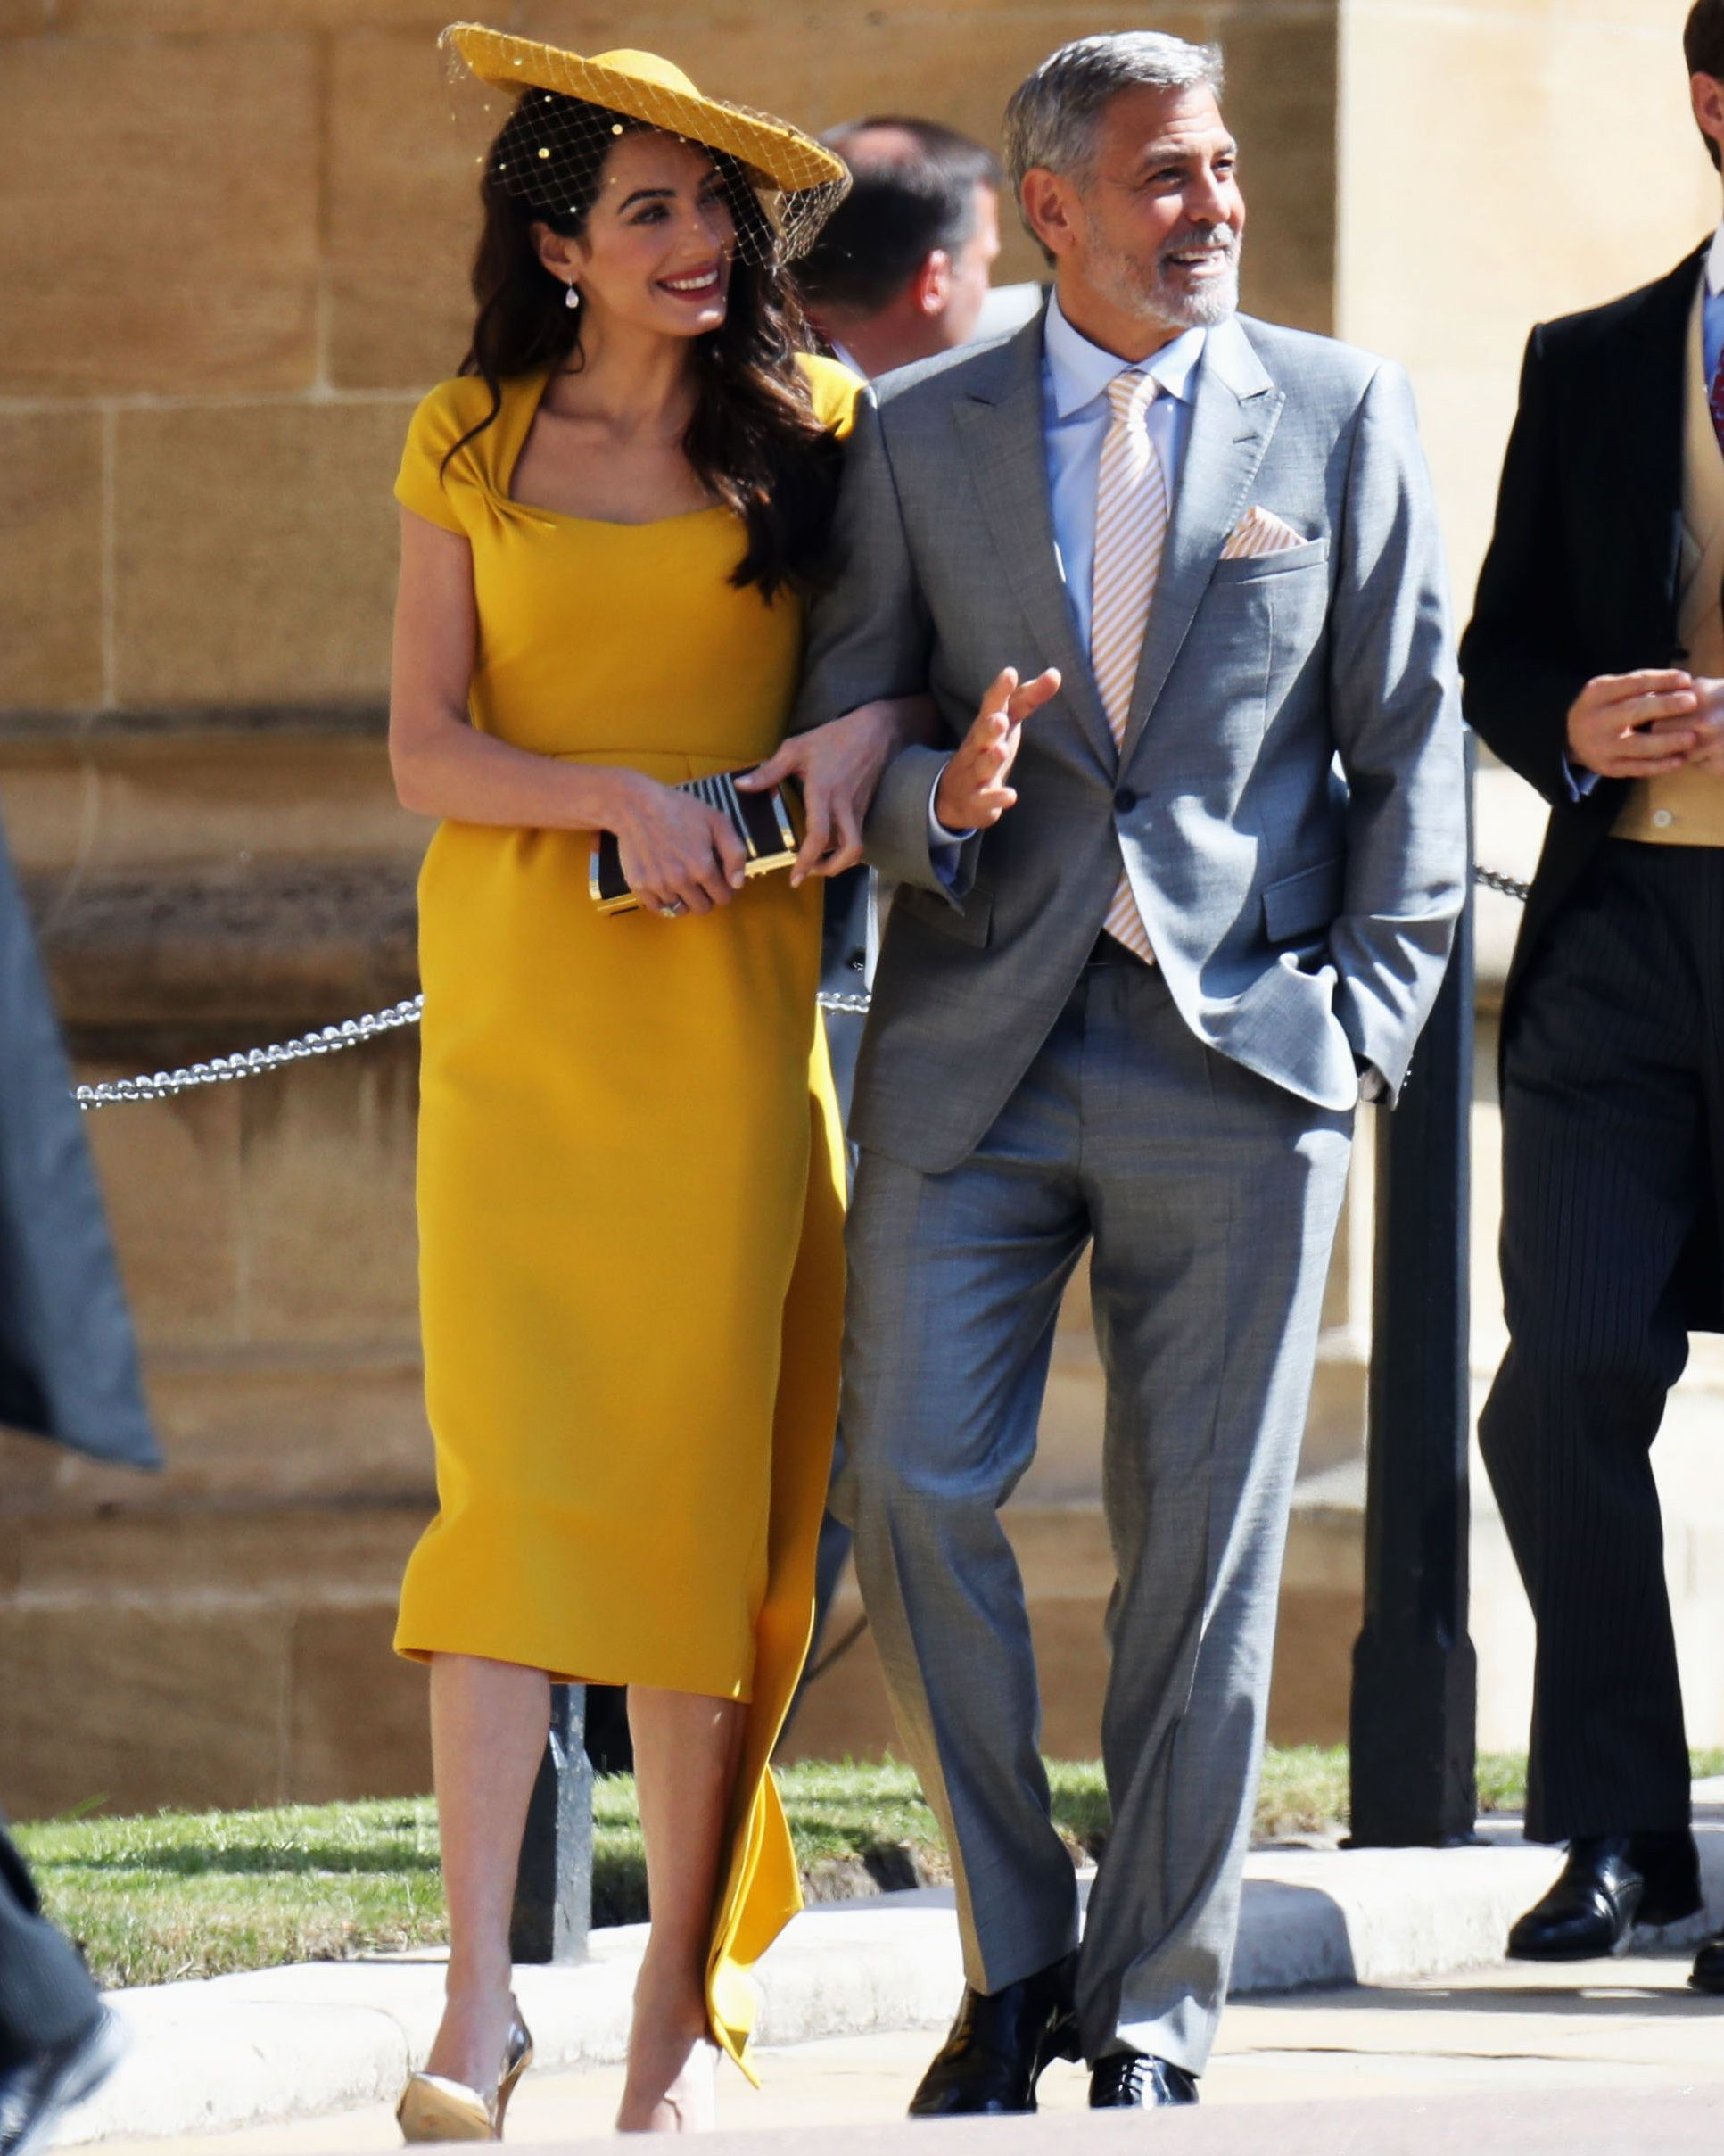 790a1137f708c Royal Wedding Celebrity Guest Arrivals Include  Suits  Stars